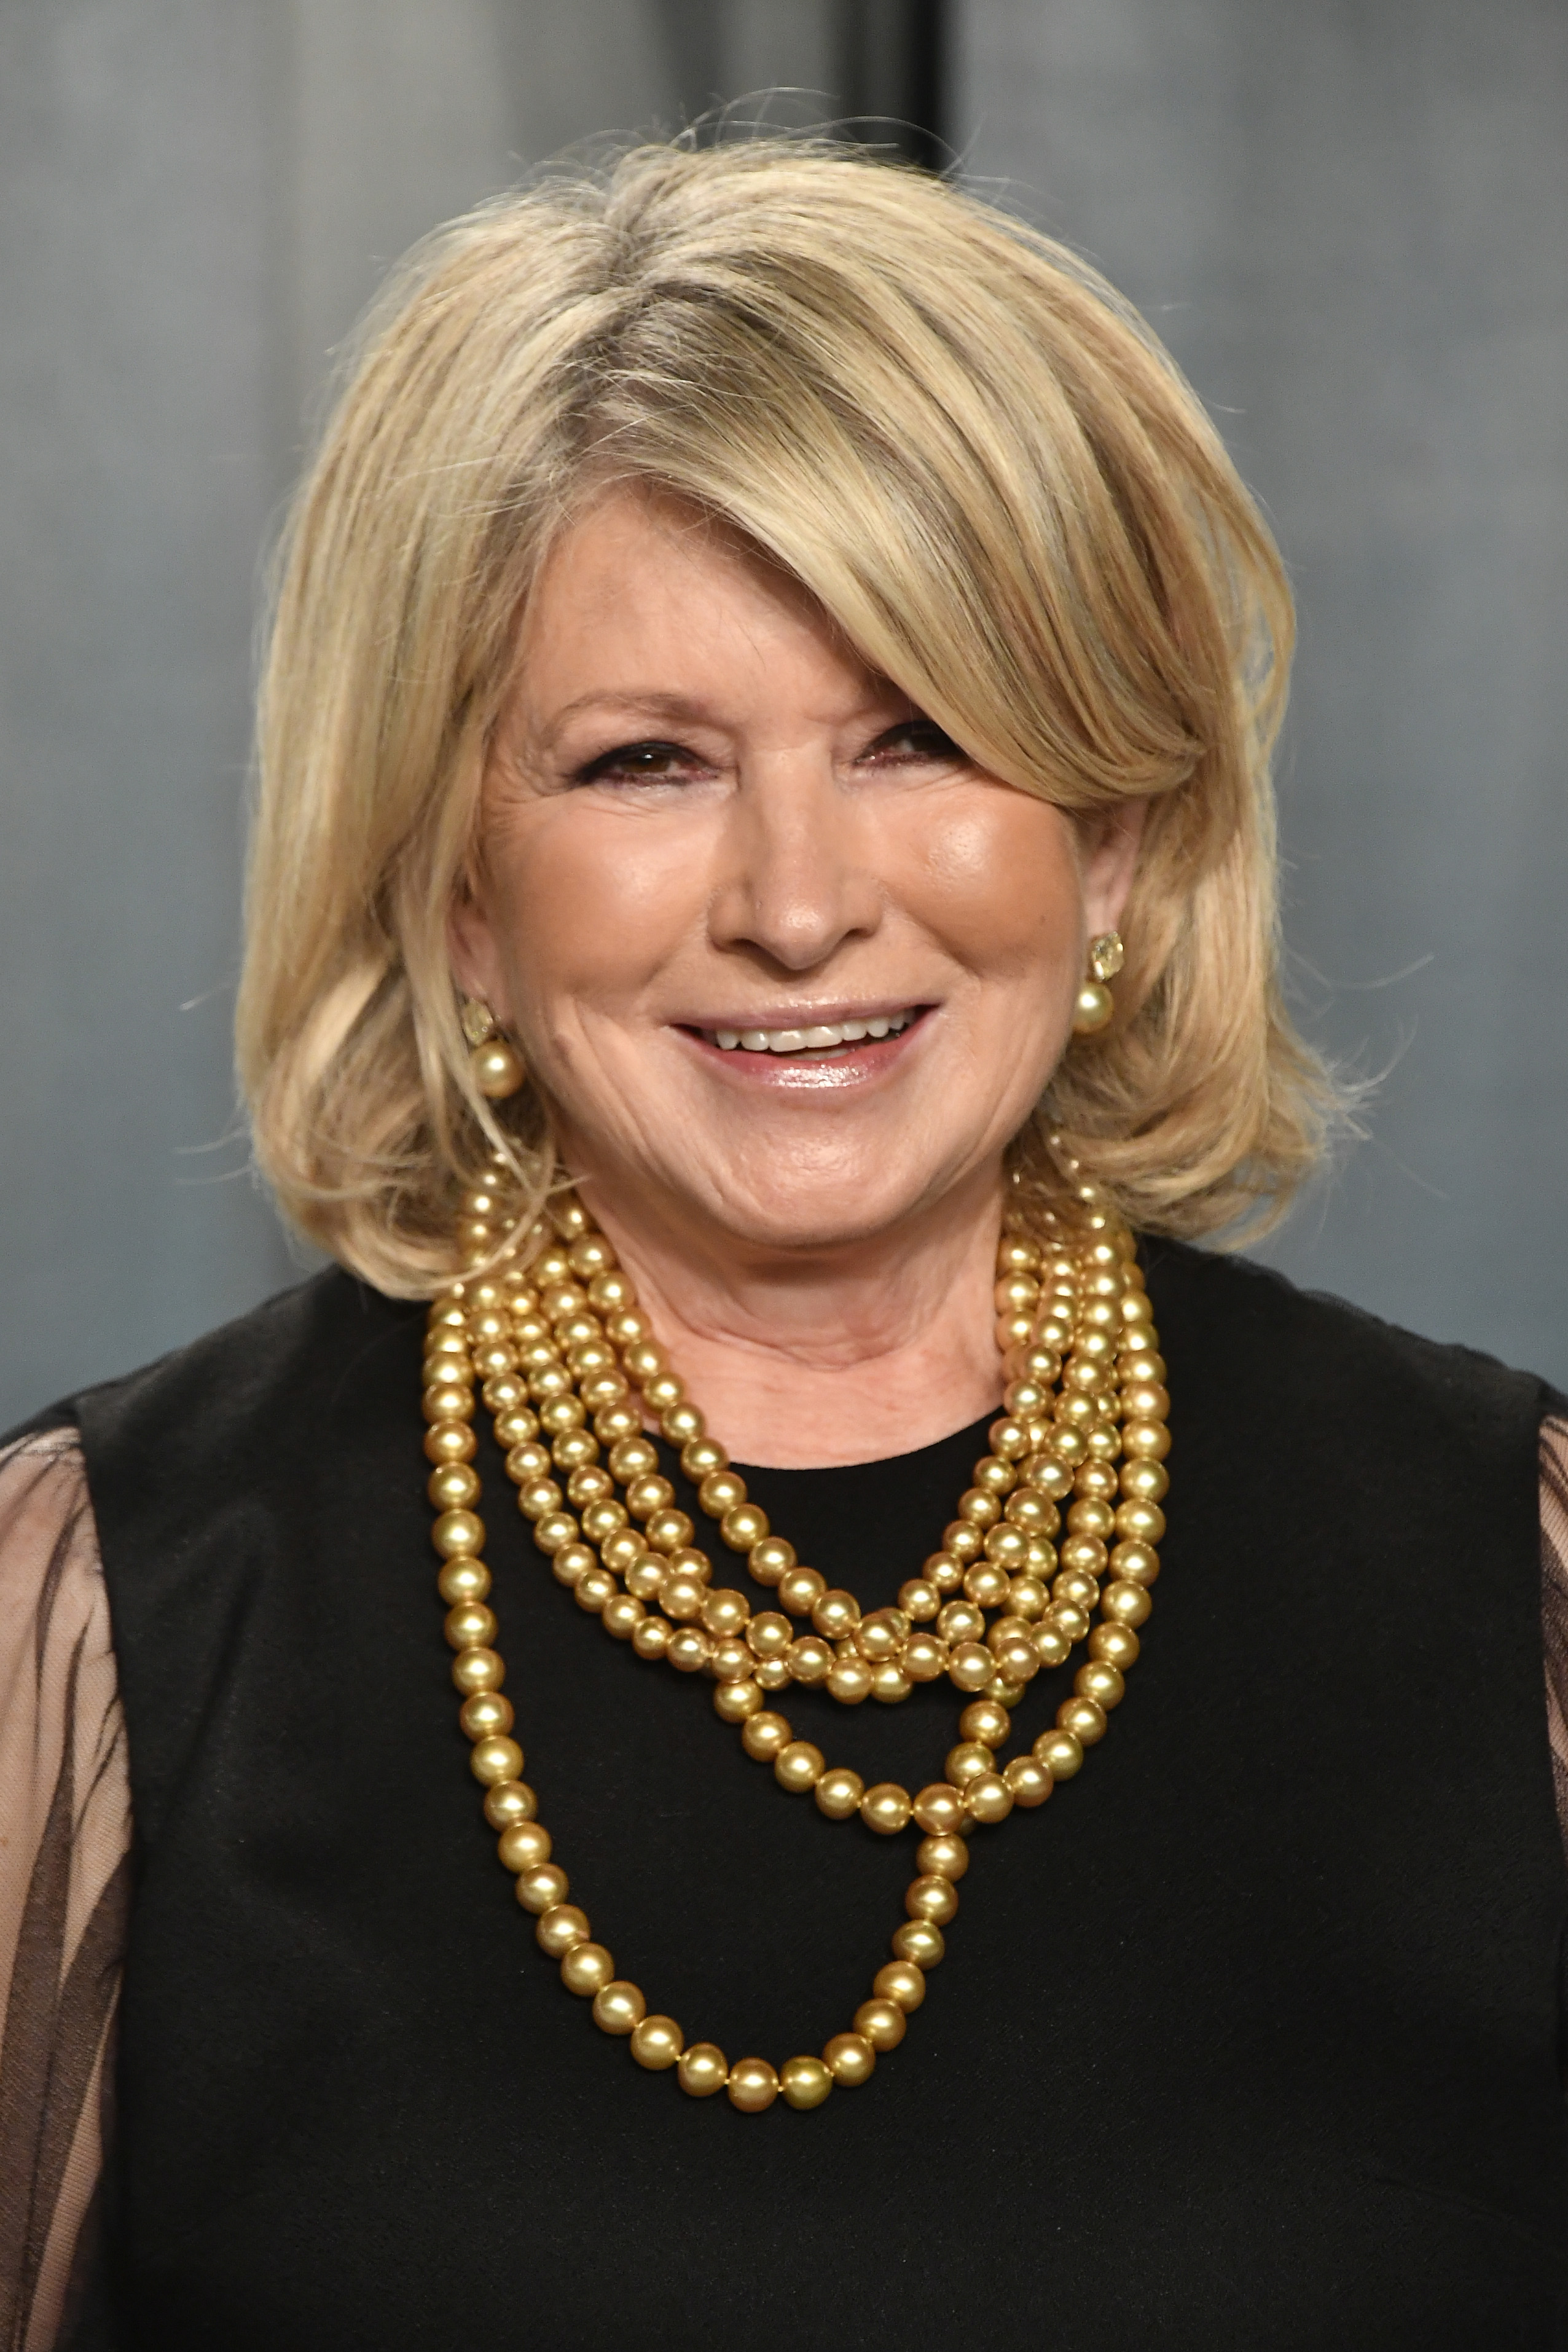 Martha Stewart attends the 2020 Vanity Fair Oscar Party on Feb 09, 2020 in Beverly Hills, California.